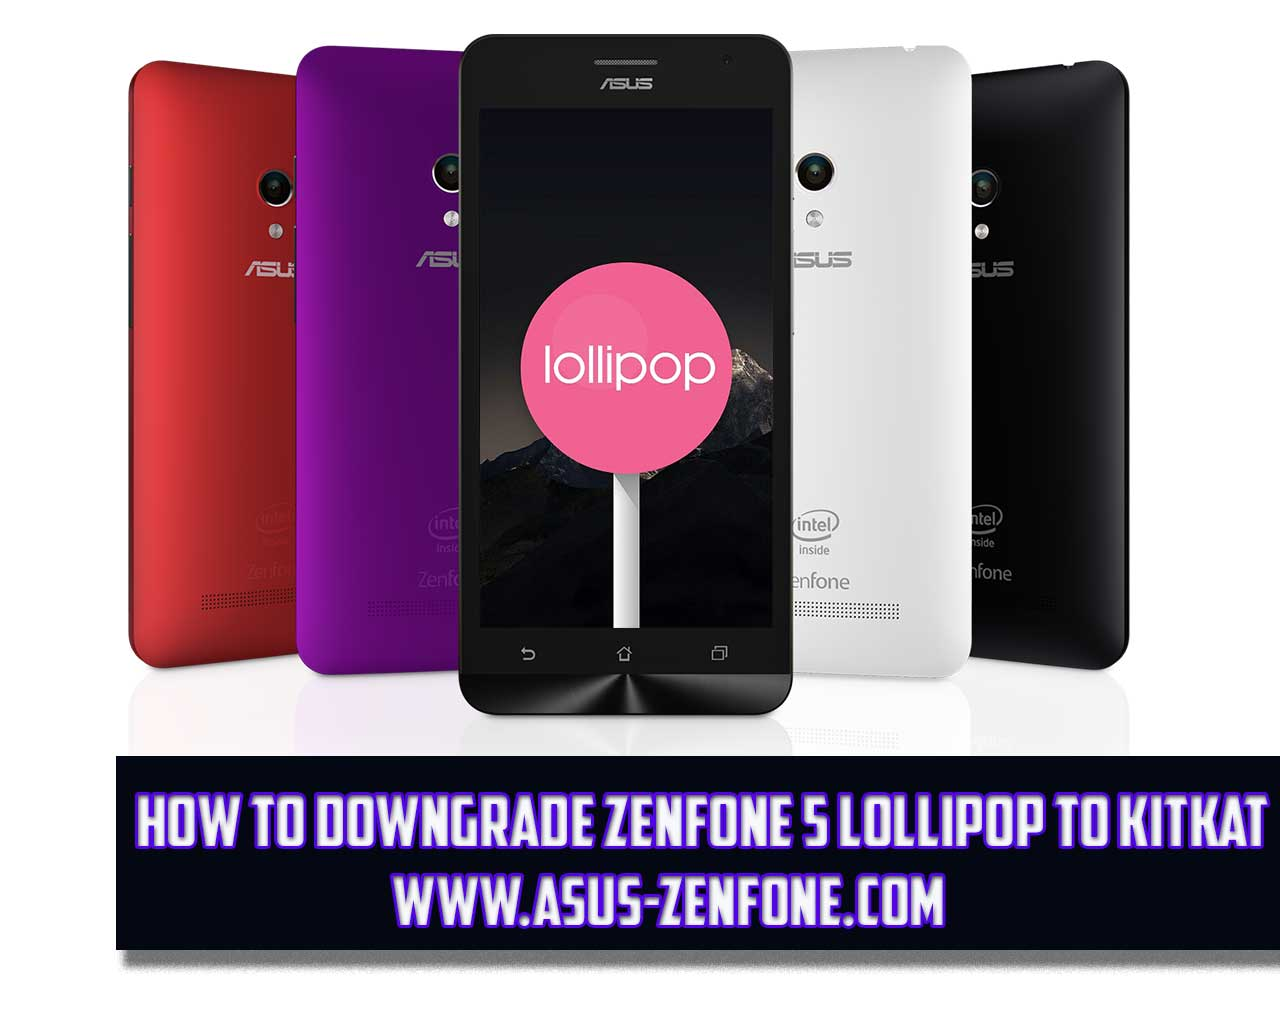 Today ASUS Zenfone Blog will show you How to Downgrade ASUS Zenfone 5 ...